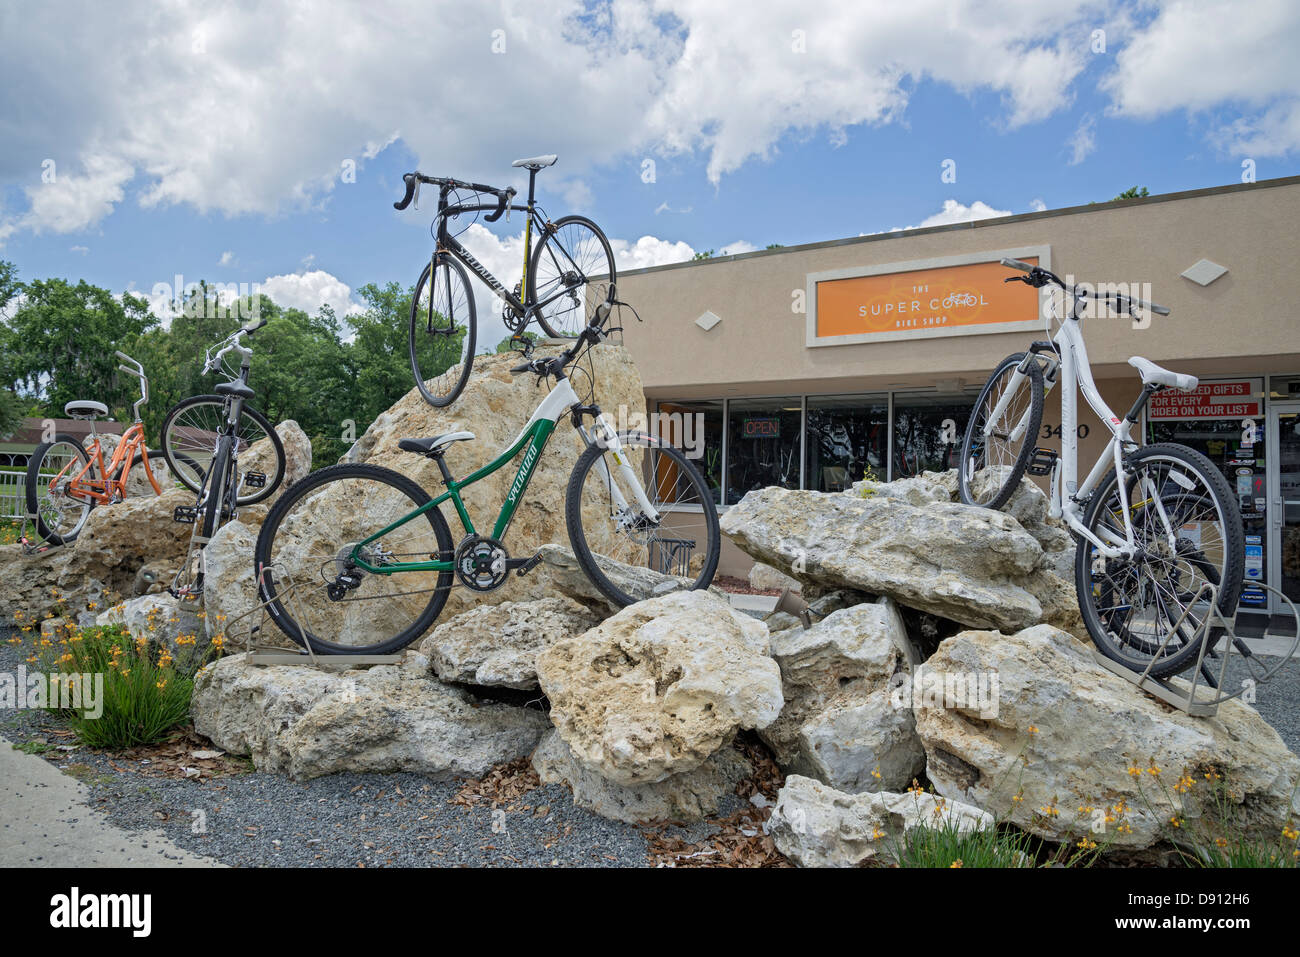 Bicycles atop rocks in front of a bike shop Gainesville Florida. - Stock Image